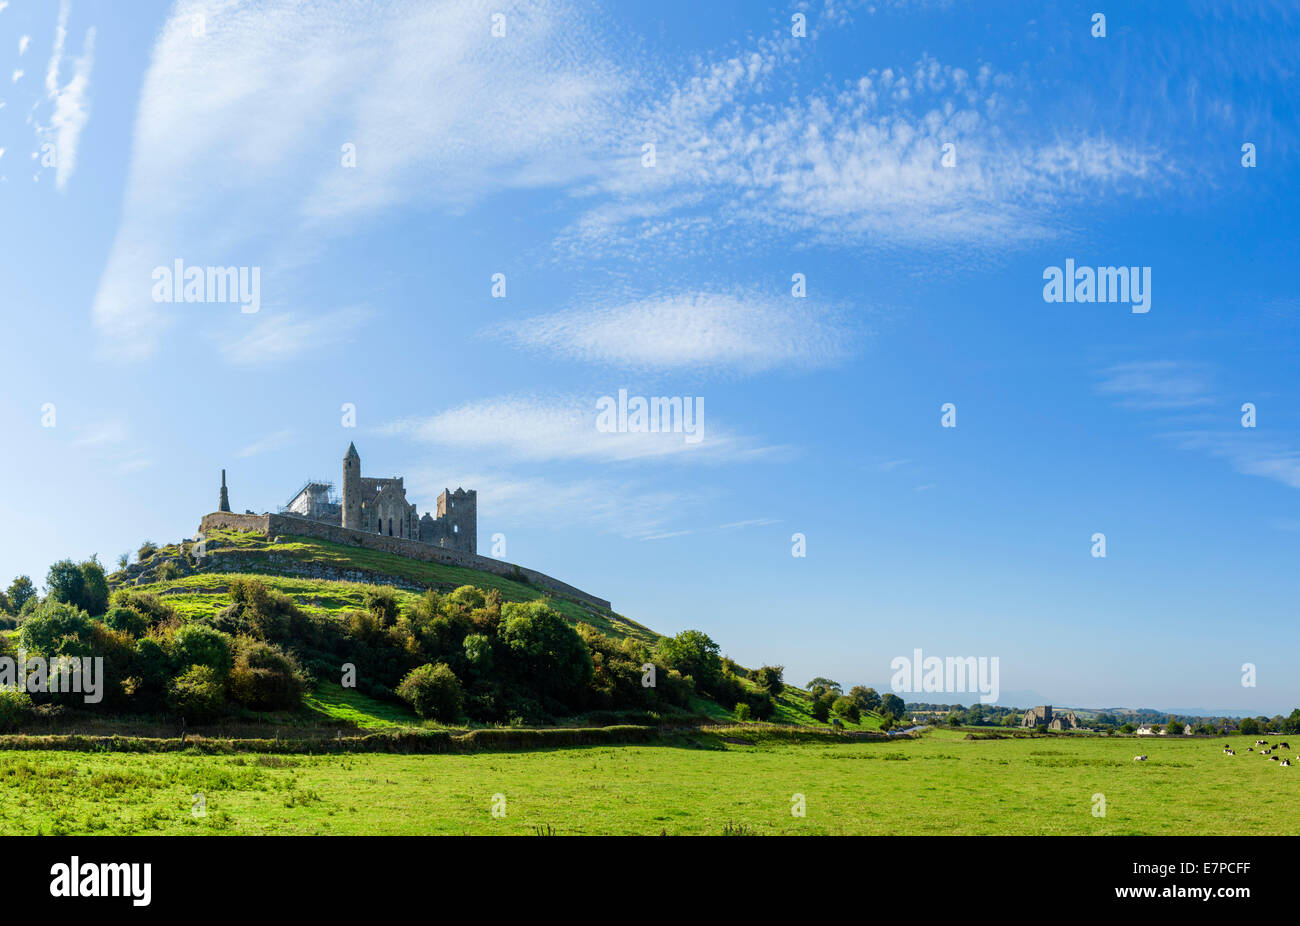 The Rock of Cashel, County Tipperary, Republic of Ireland - Stock Image